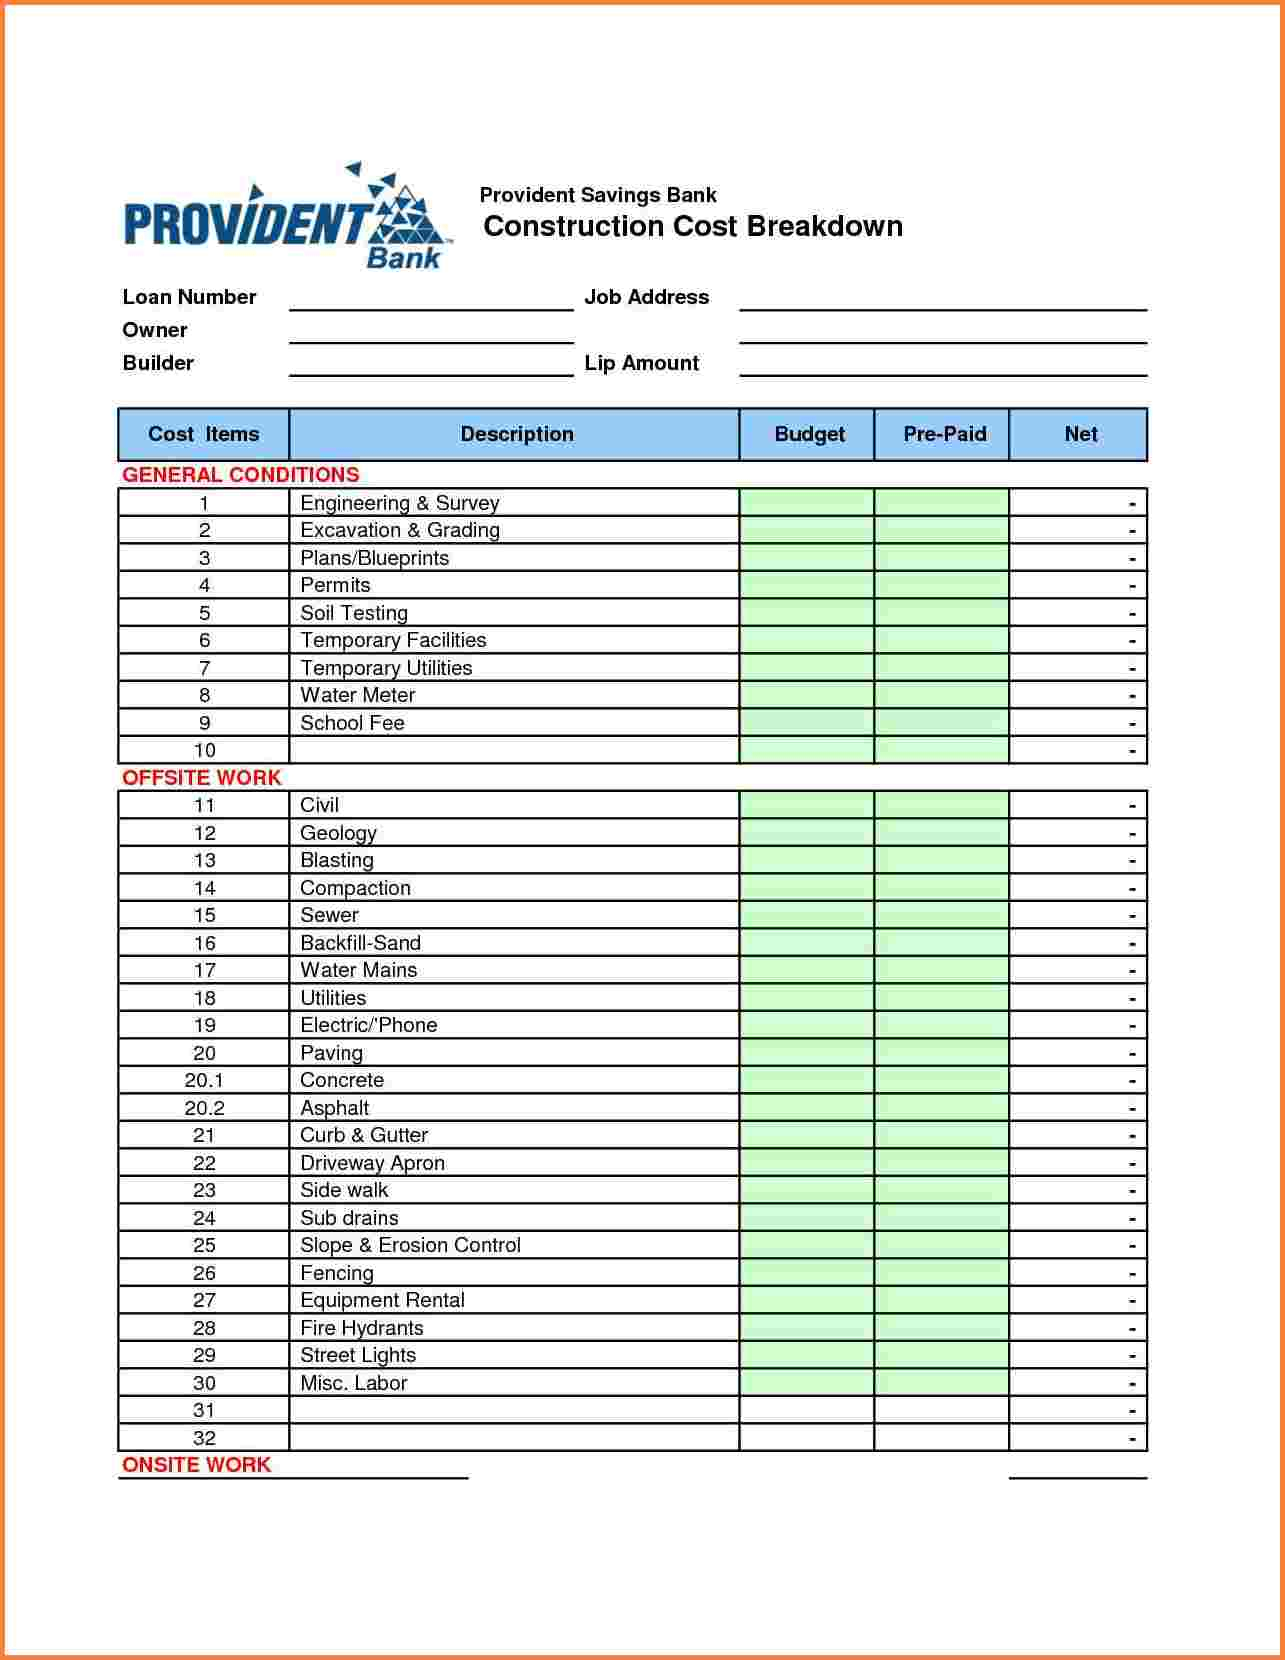 Templates Construction Cost Breakdown Spreadsheet | Homebiz4U2Profit In Cost Breakdown Template